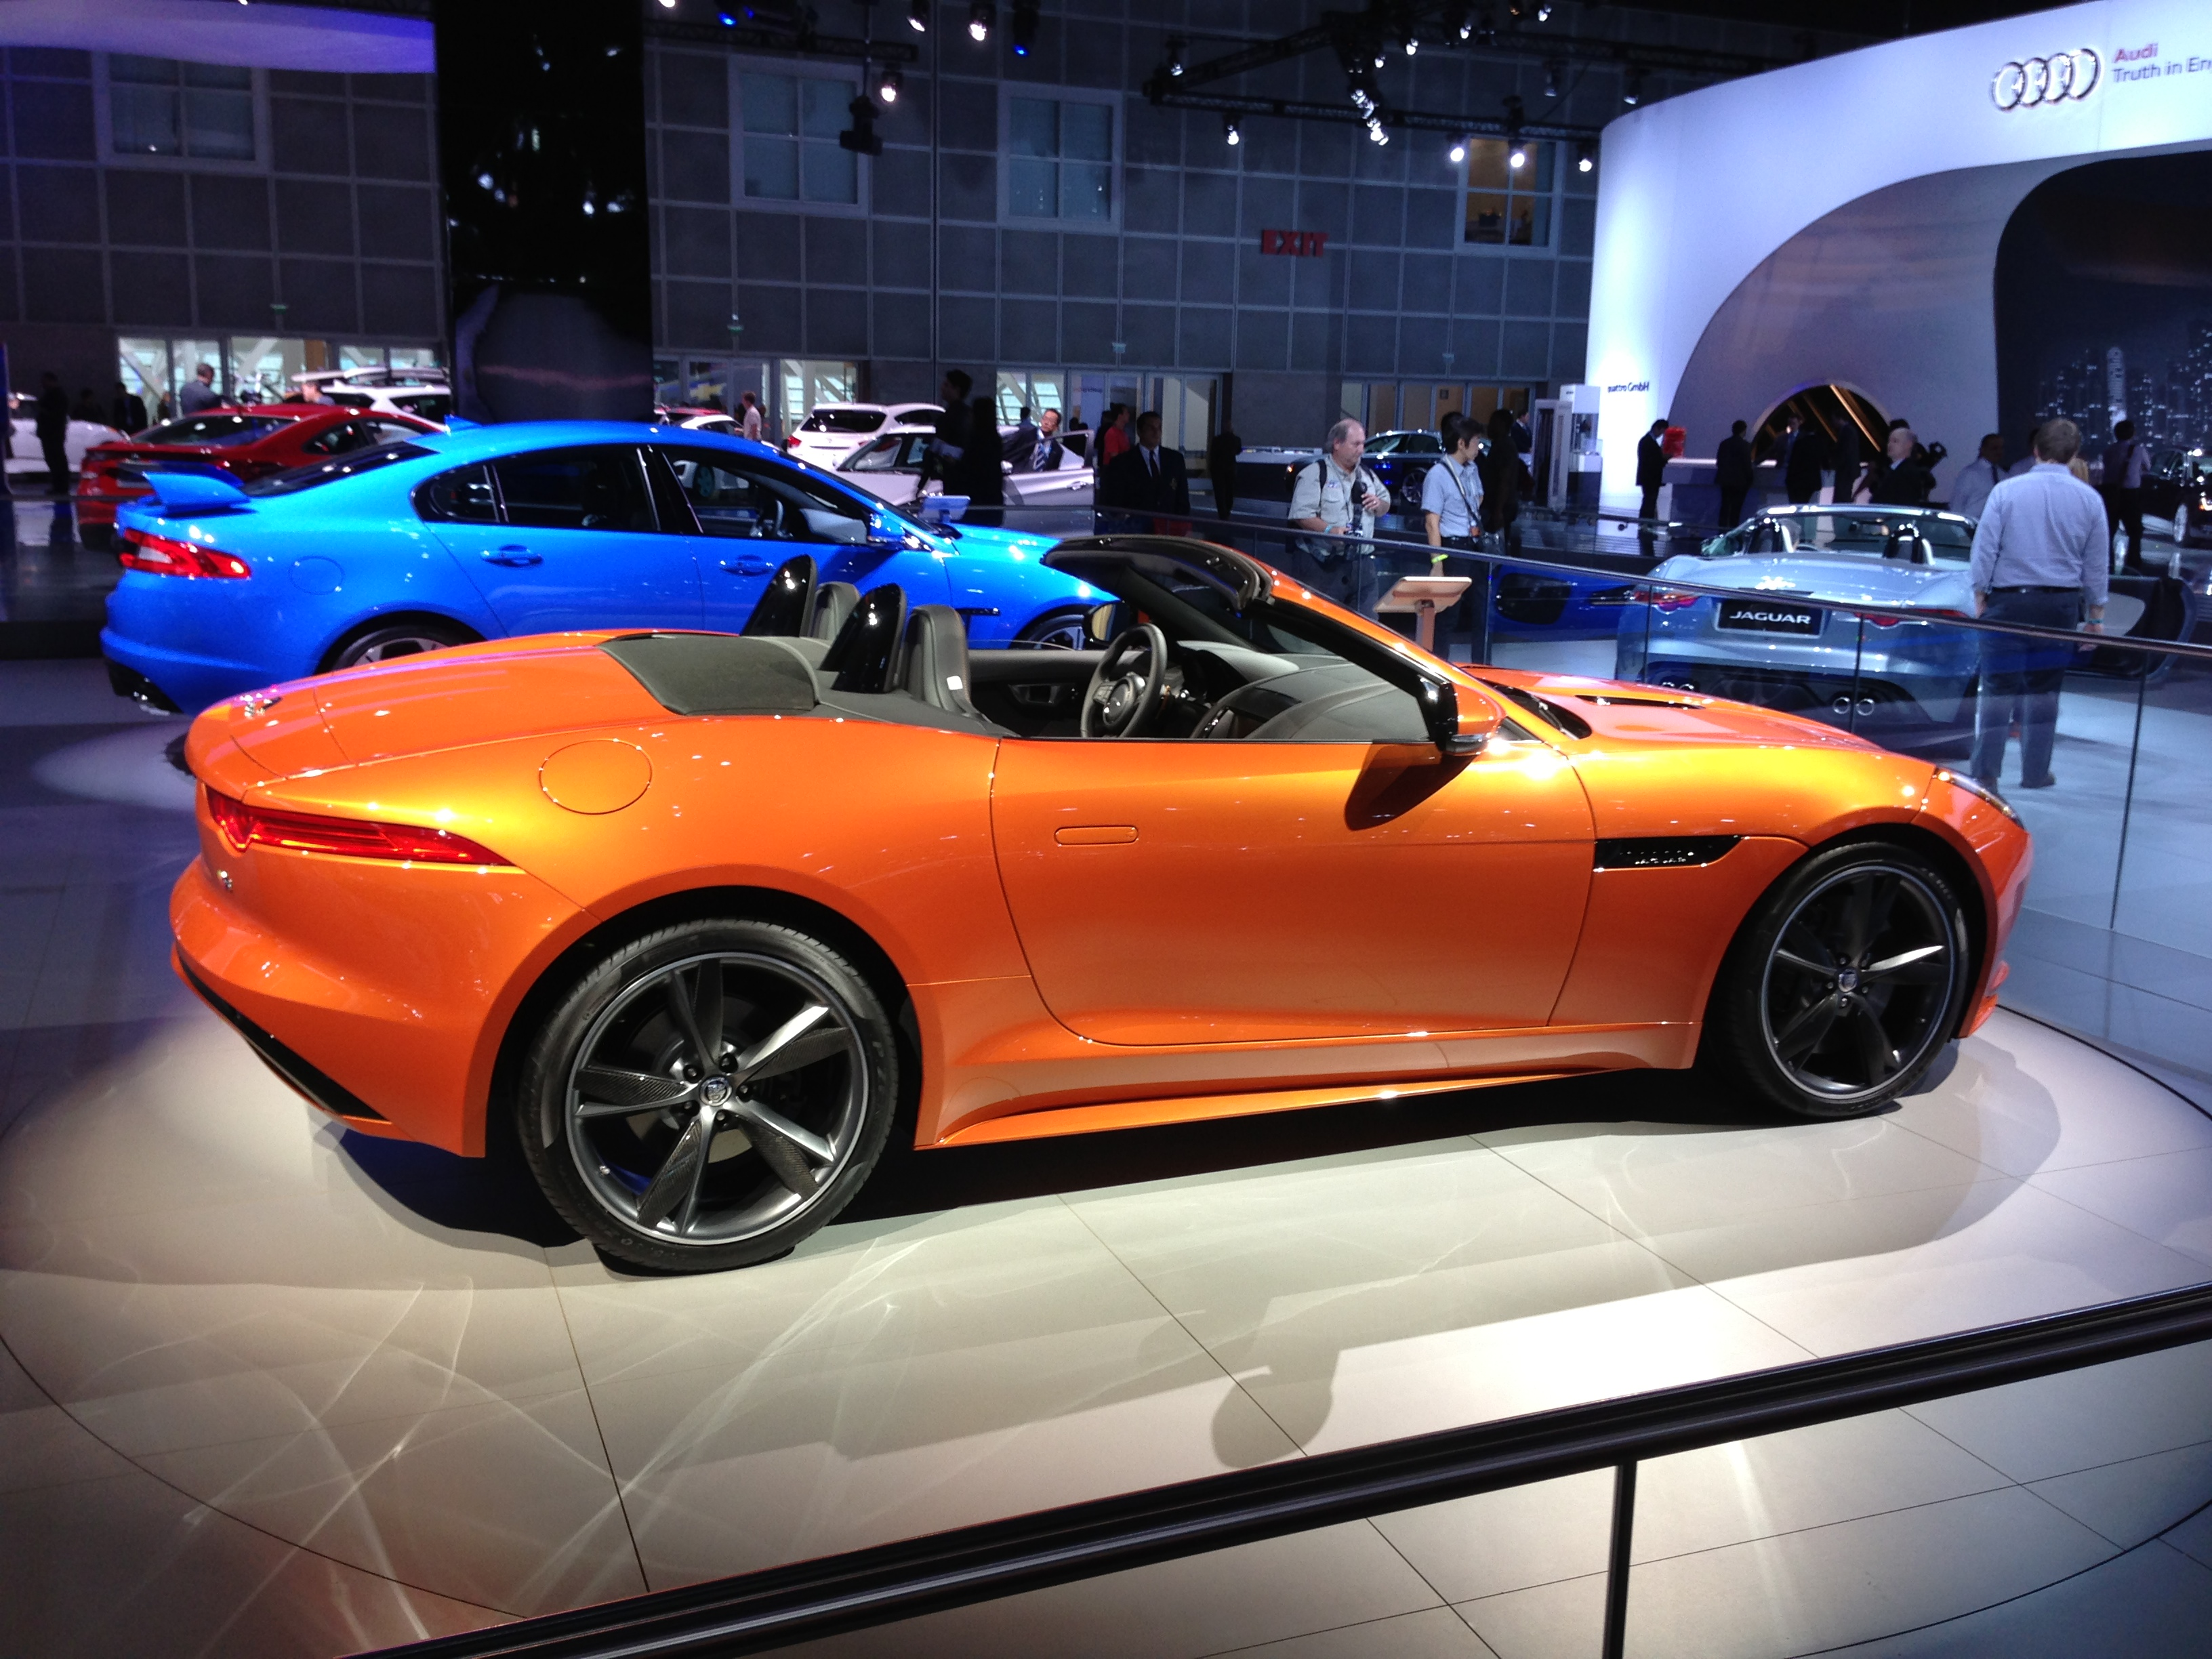 Armchair Executive: Why Even Bother With Auto Shows?